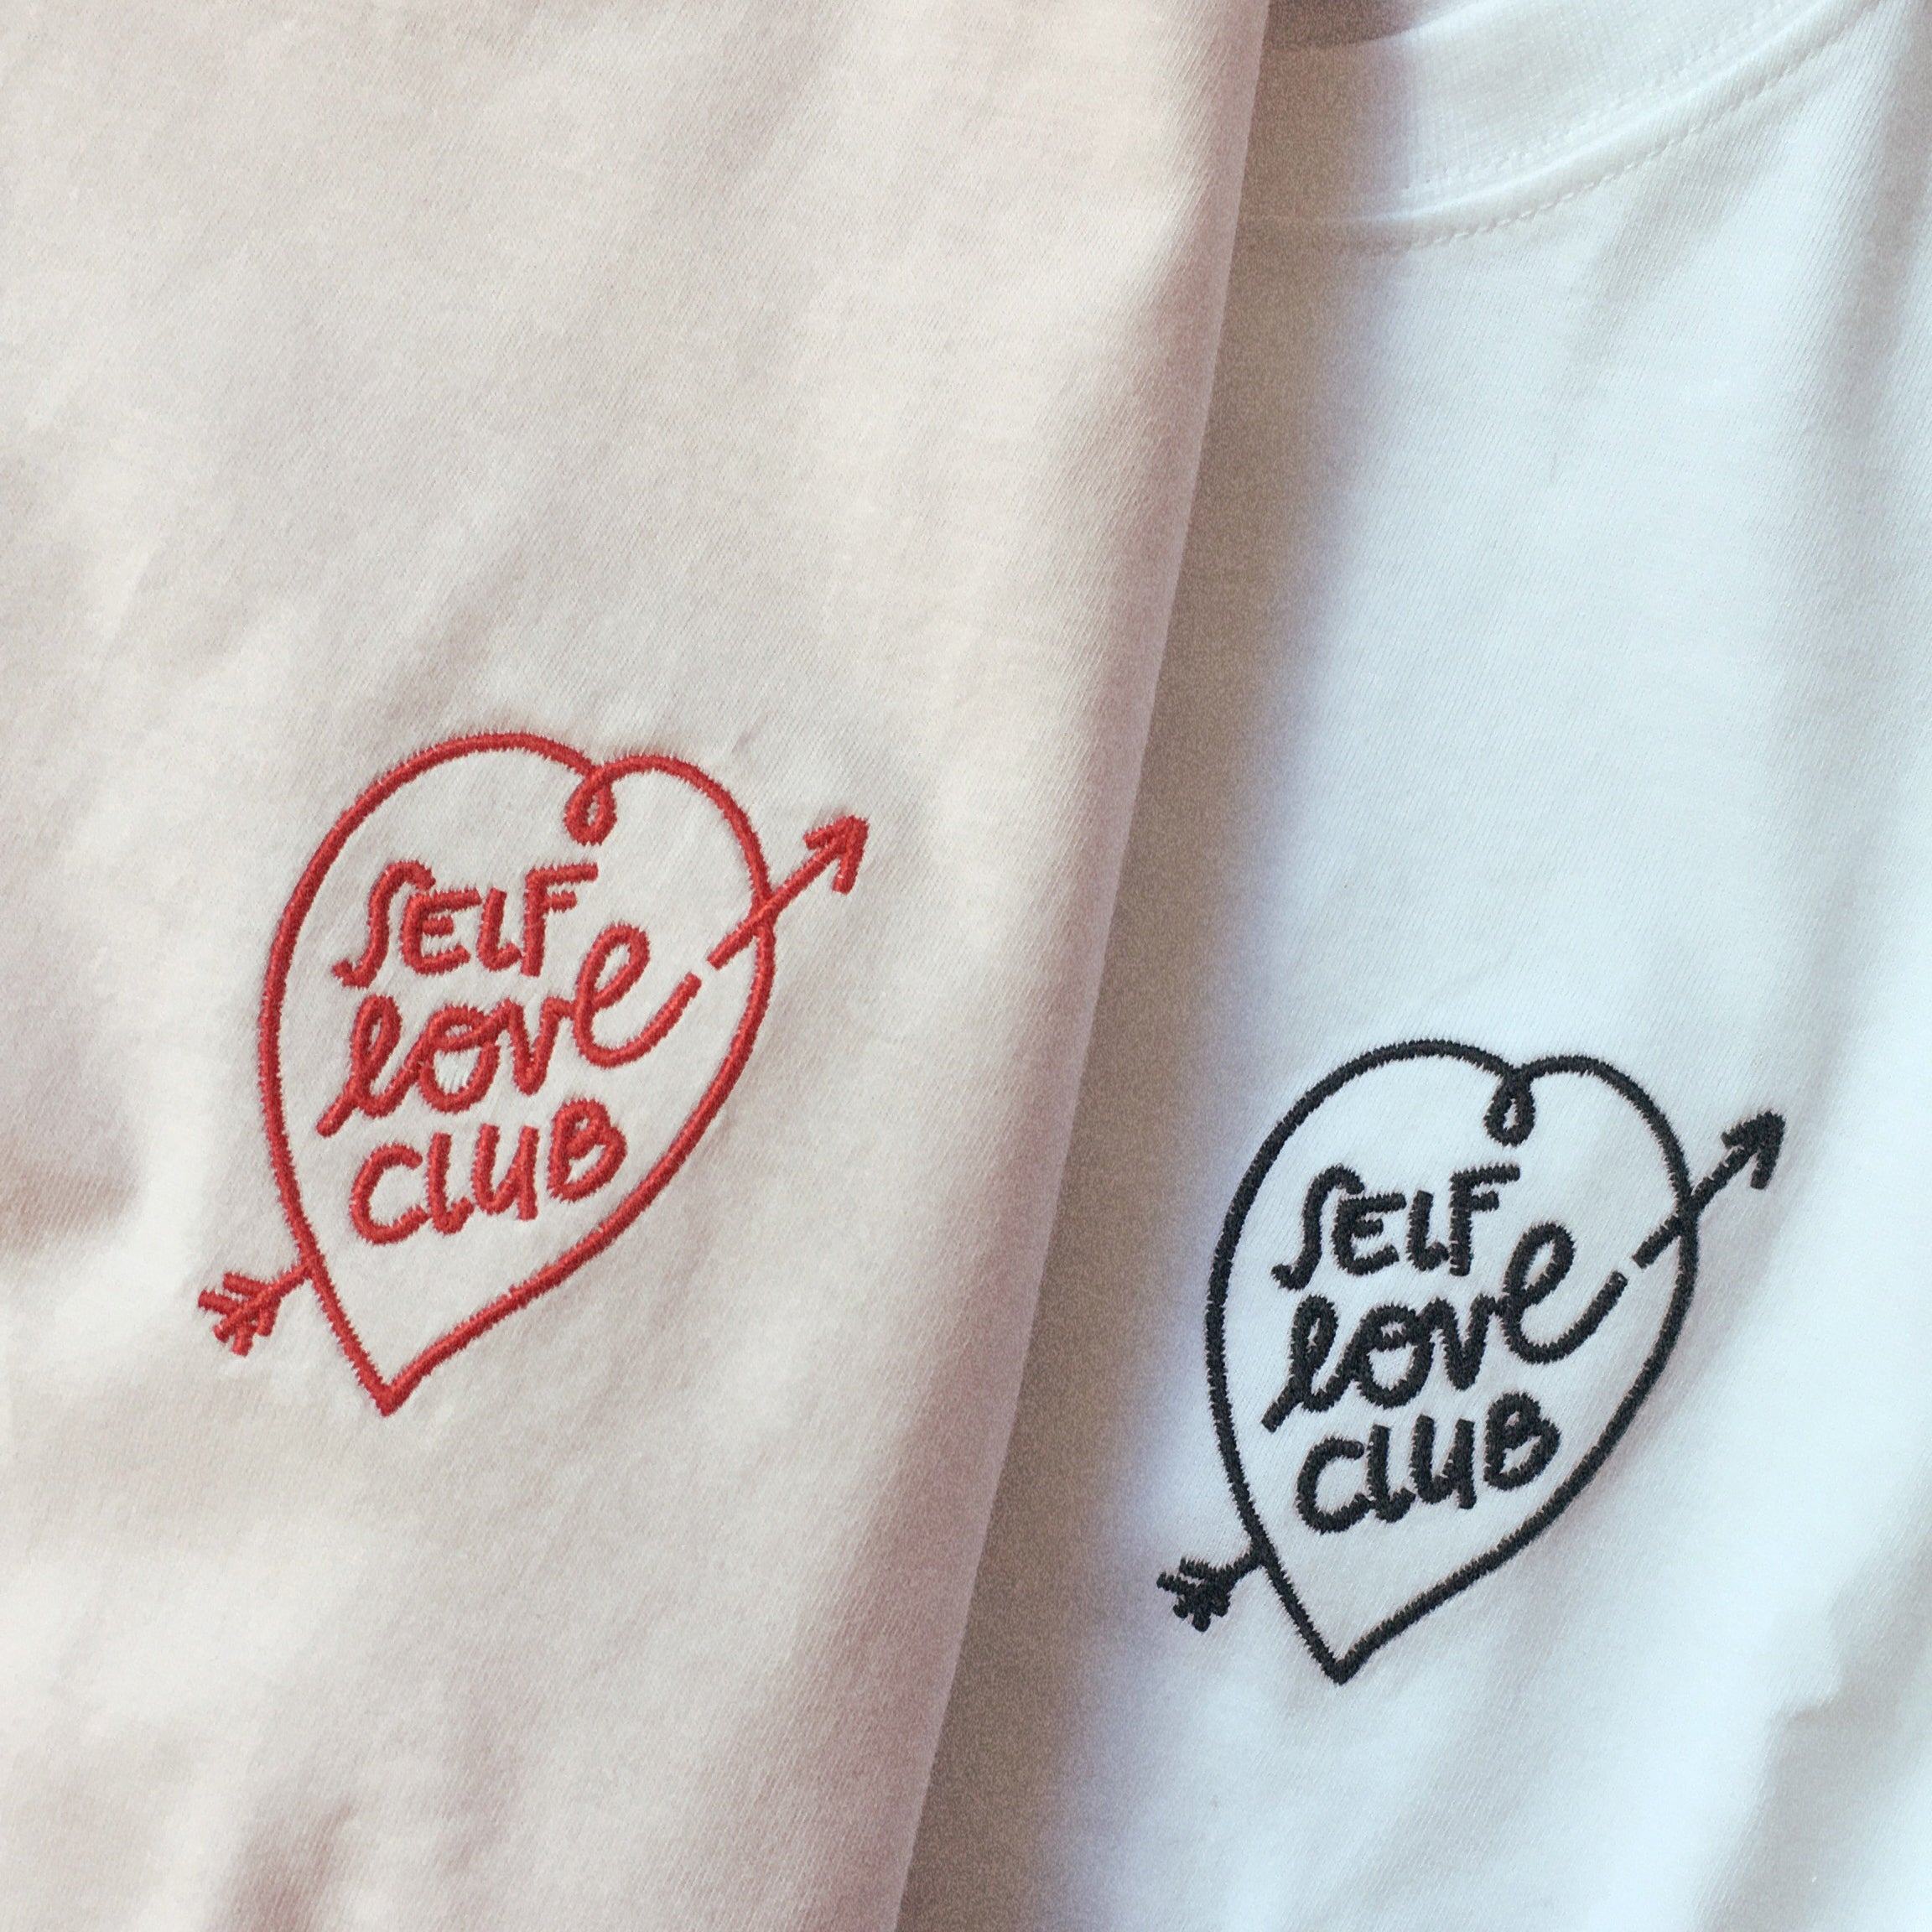 self love club shirts